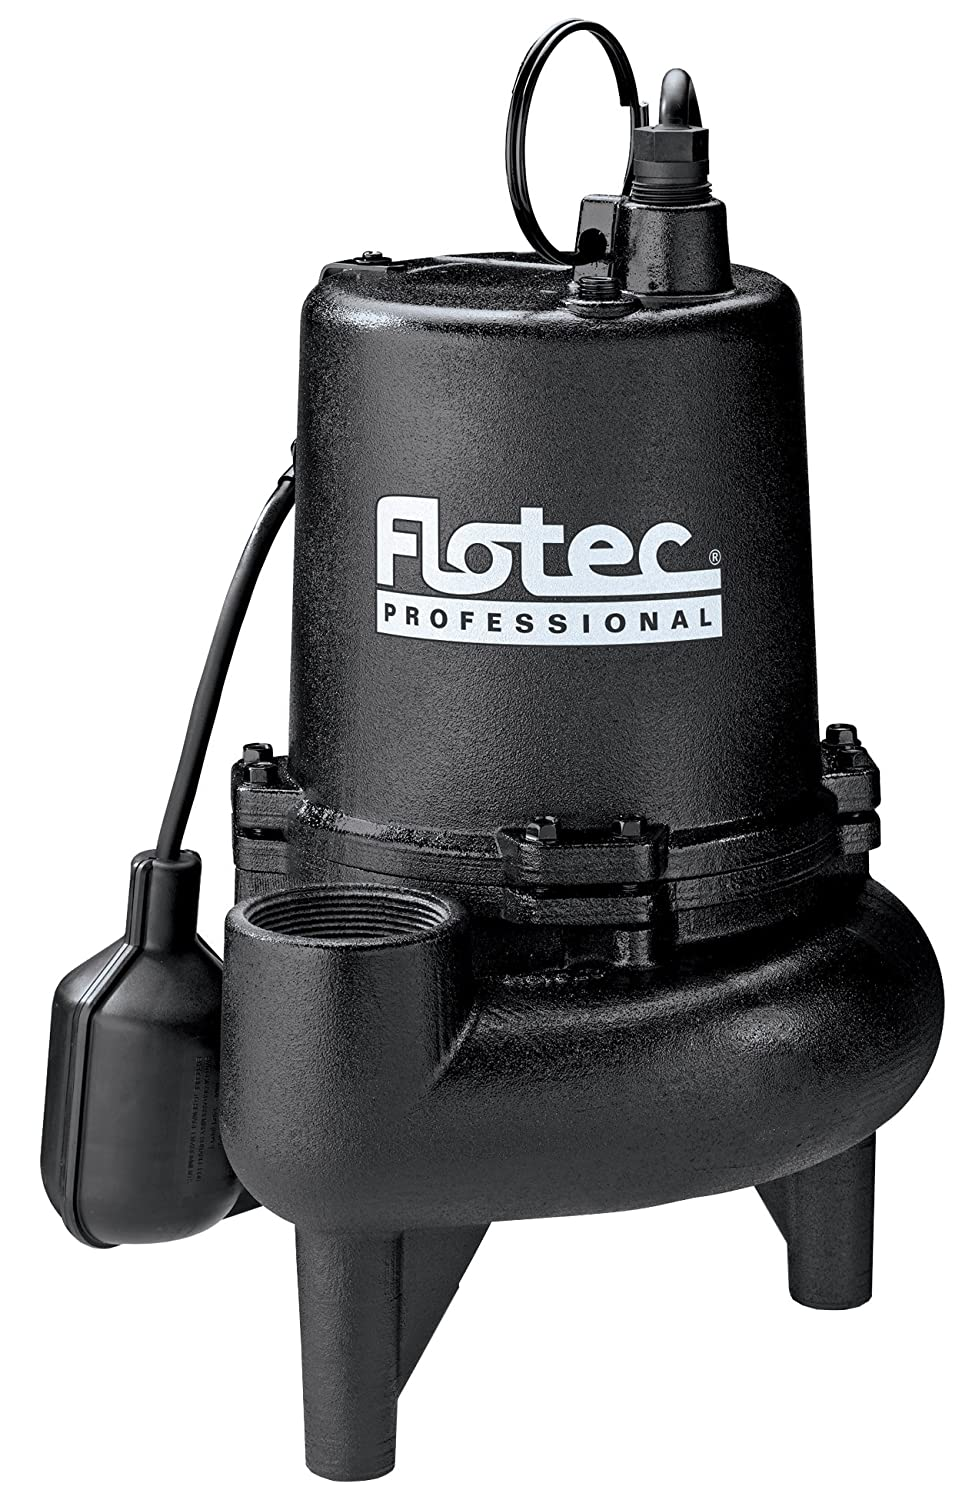 Flotec E75STVT Sewage Pump, 170 Gpm, 3/4 Hp, 115 V, 9 A, 60 Hz, 2 In Npt Outlet, Cast Iron